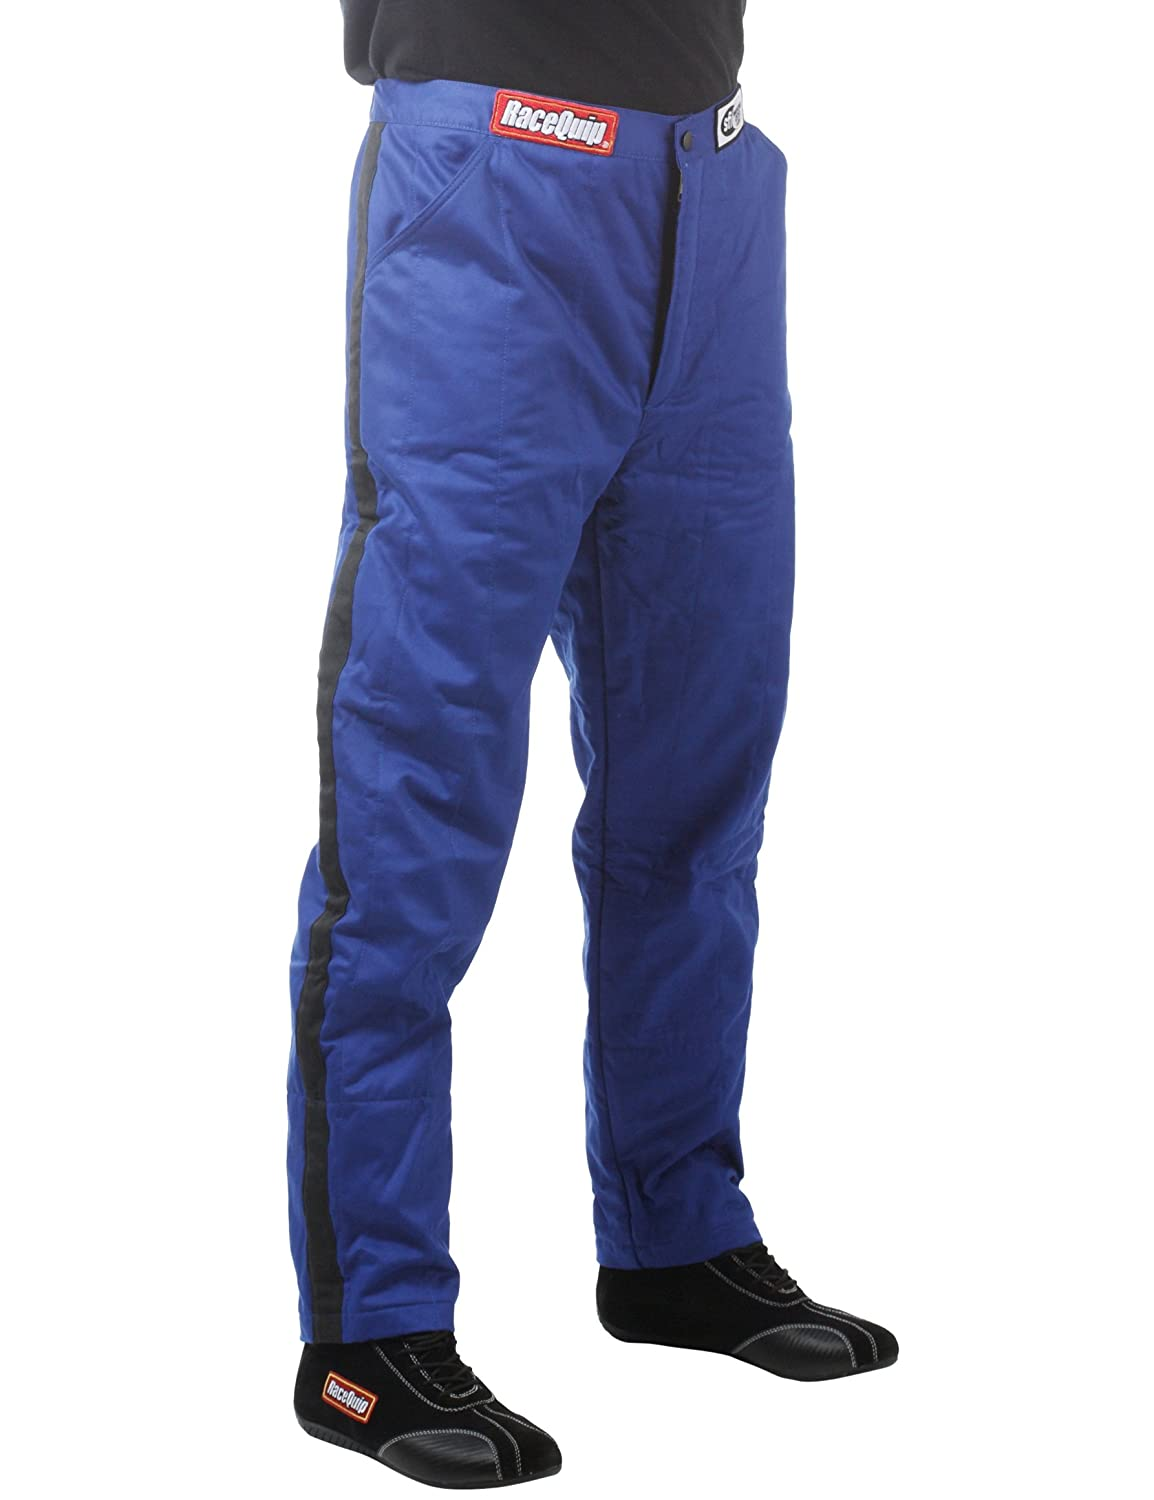 RaceQuip 122002 122 Series Small Black SFI 3.2A/1 Multi-Layer Driving Pant